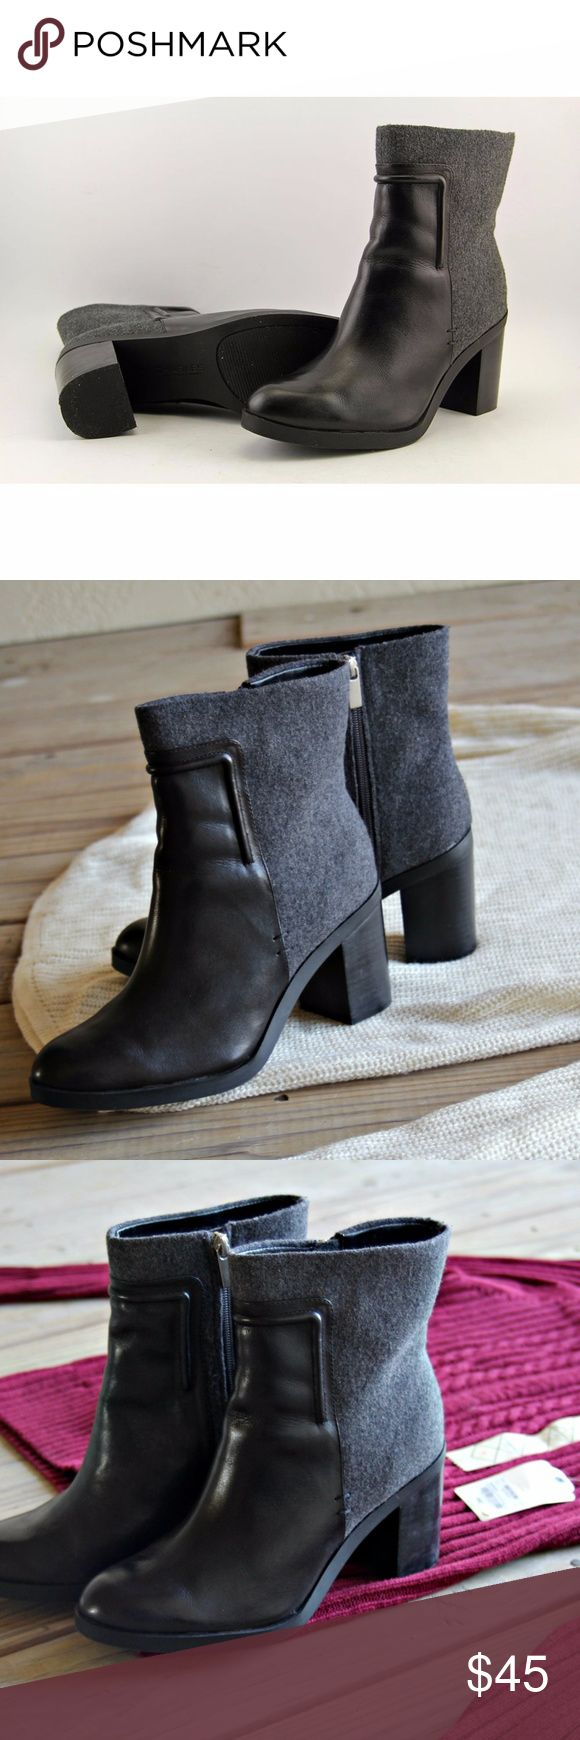 Charles by Charles David | Black Ankle Boots Gorgeous pair of black ankle booties from Charles by Charles David.  Very lightly used, in excellent condition. This are super classy. They have a chunky heel and felt material around the top that makes them so cozy and fun to style for colder weather. Size 8.5  Very quality pair of booties! Charles David Shoes Ankle Boots & Booties